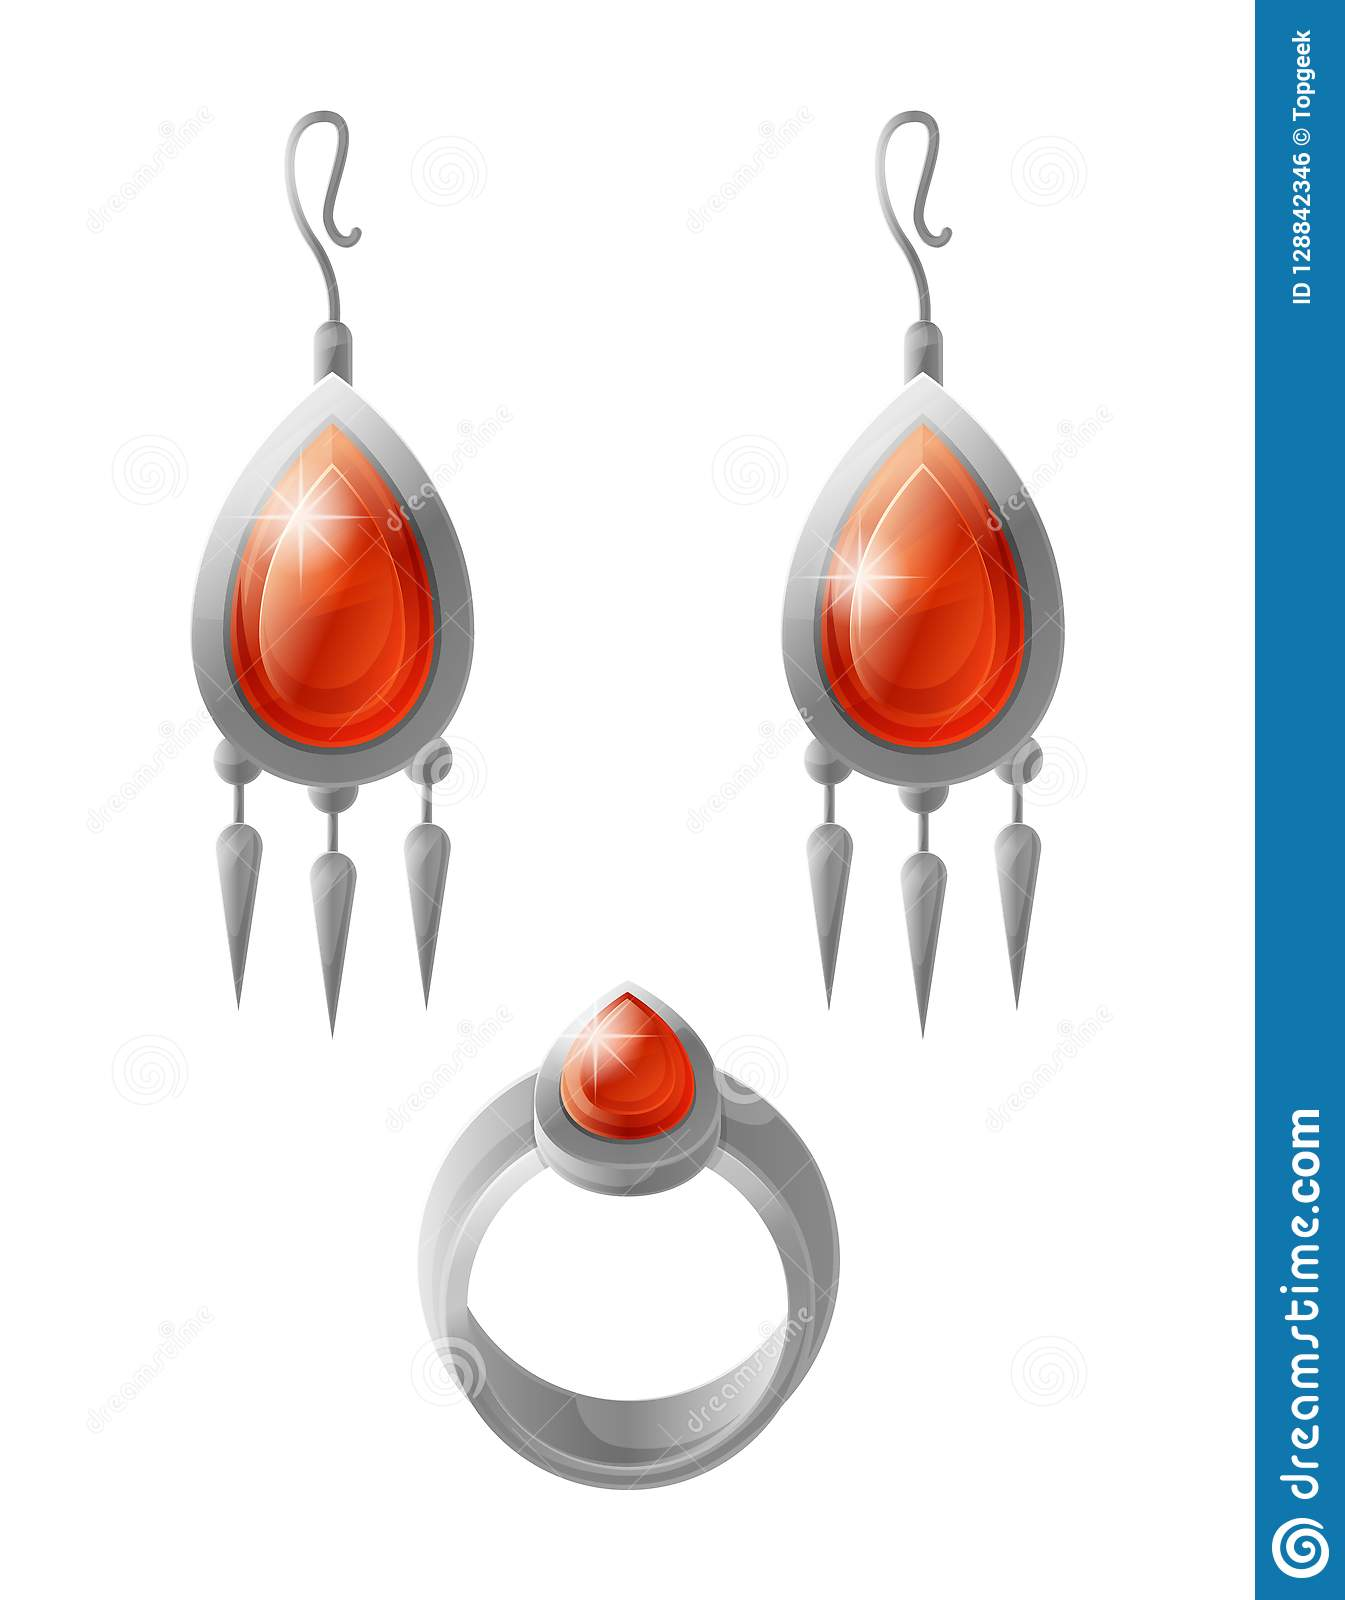 Expensive Earrings And Wedding Ring Stylish Vector Stock Vector